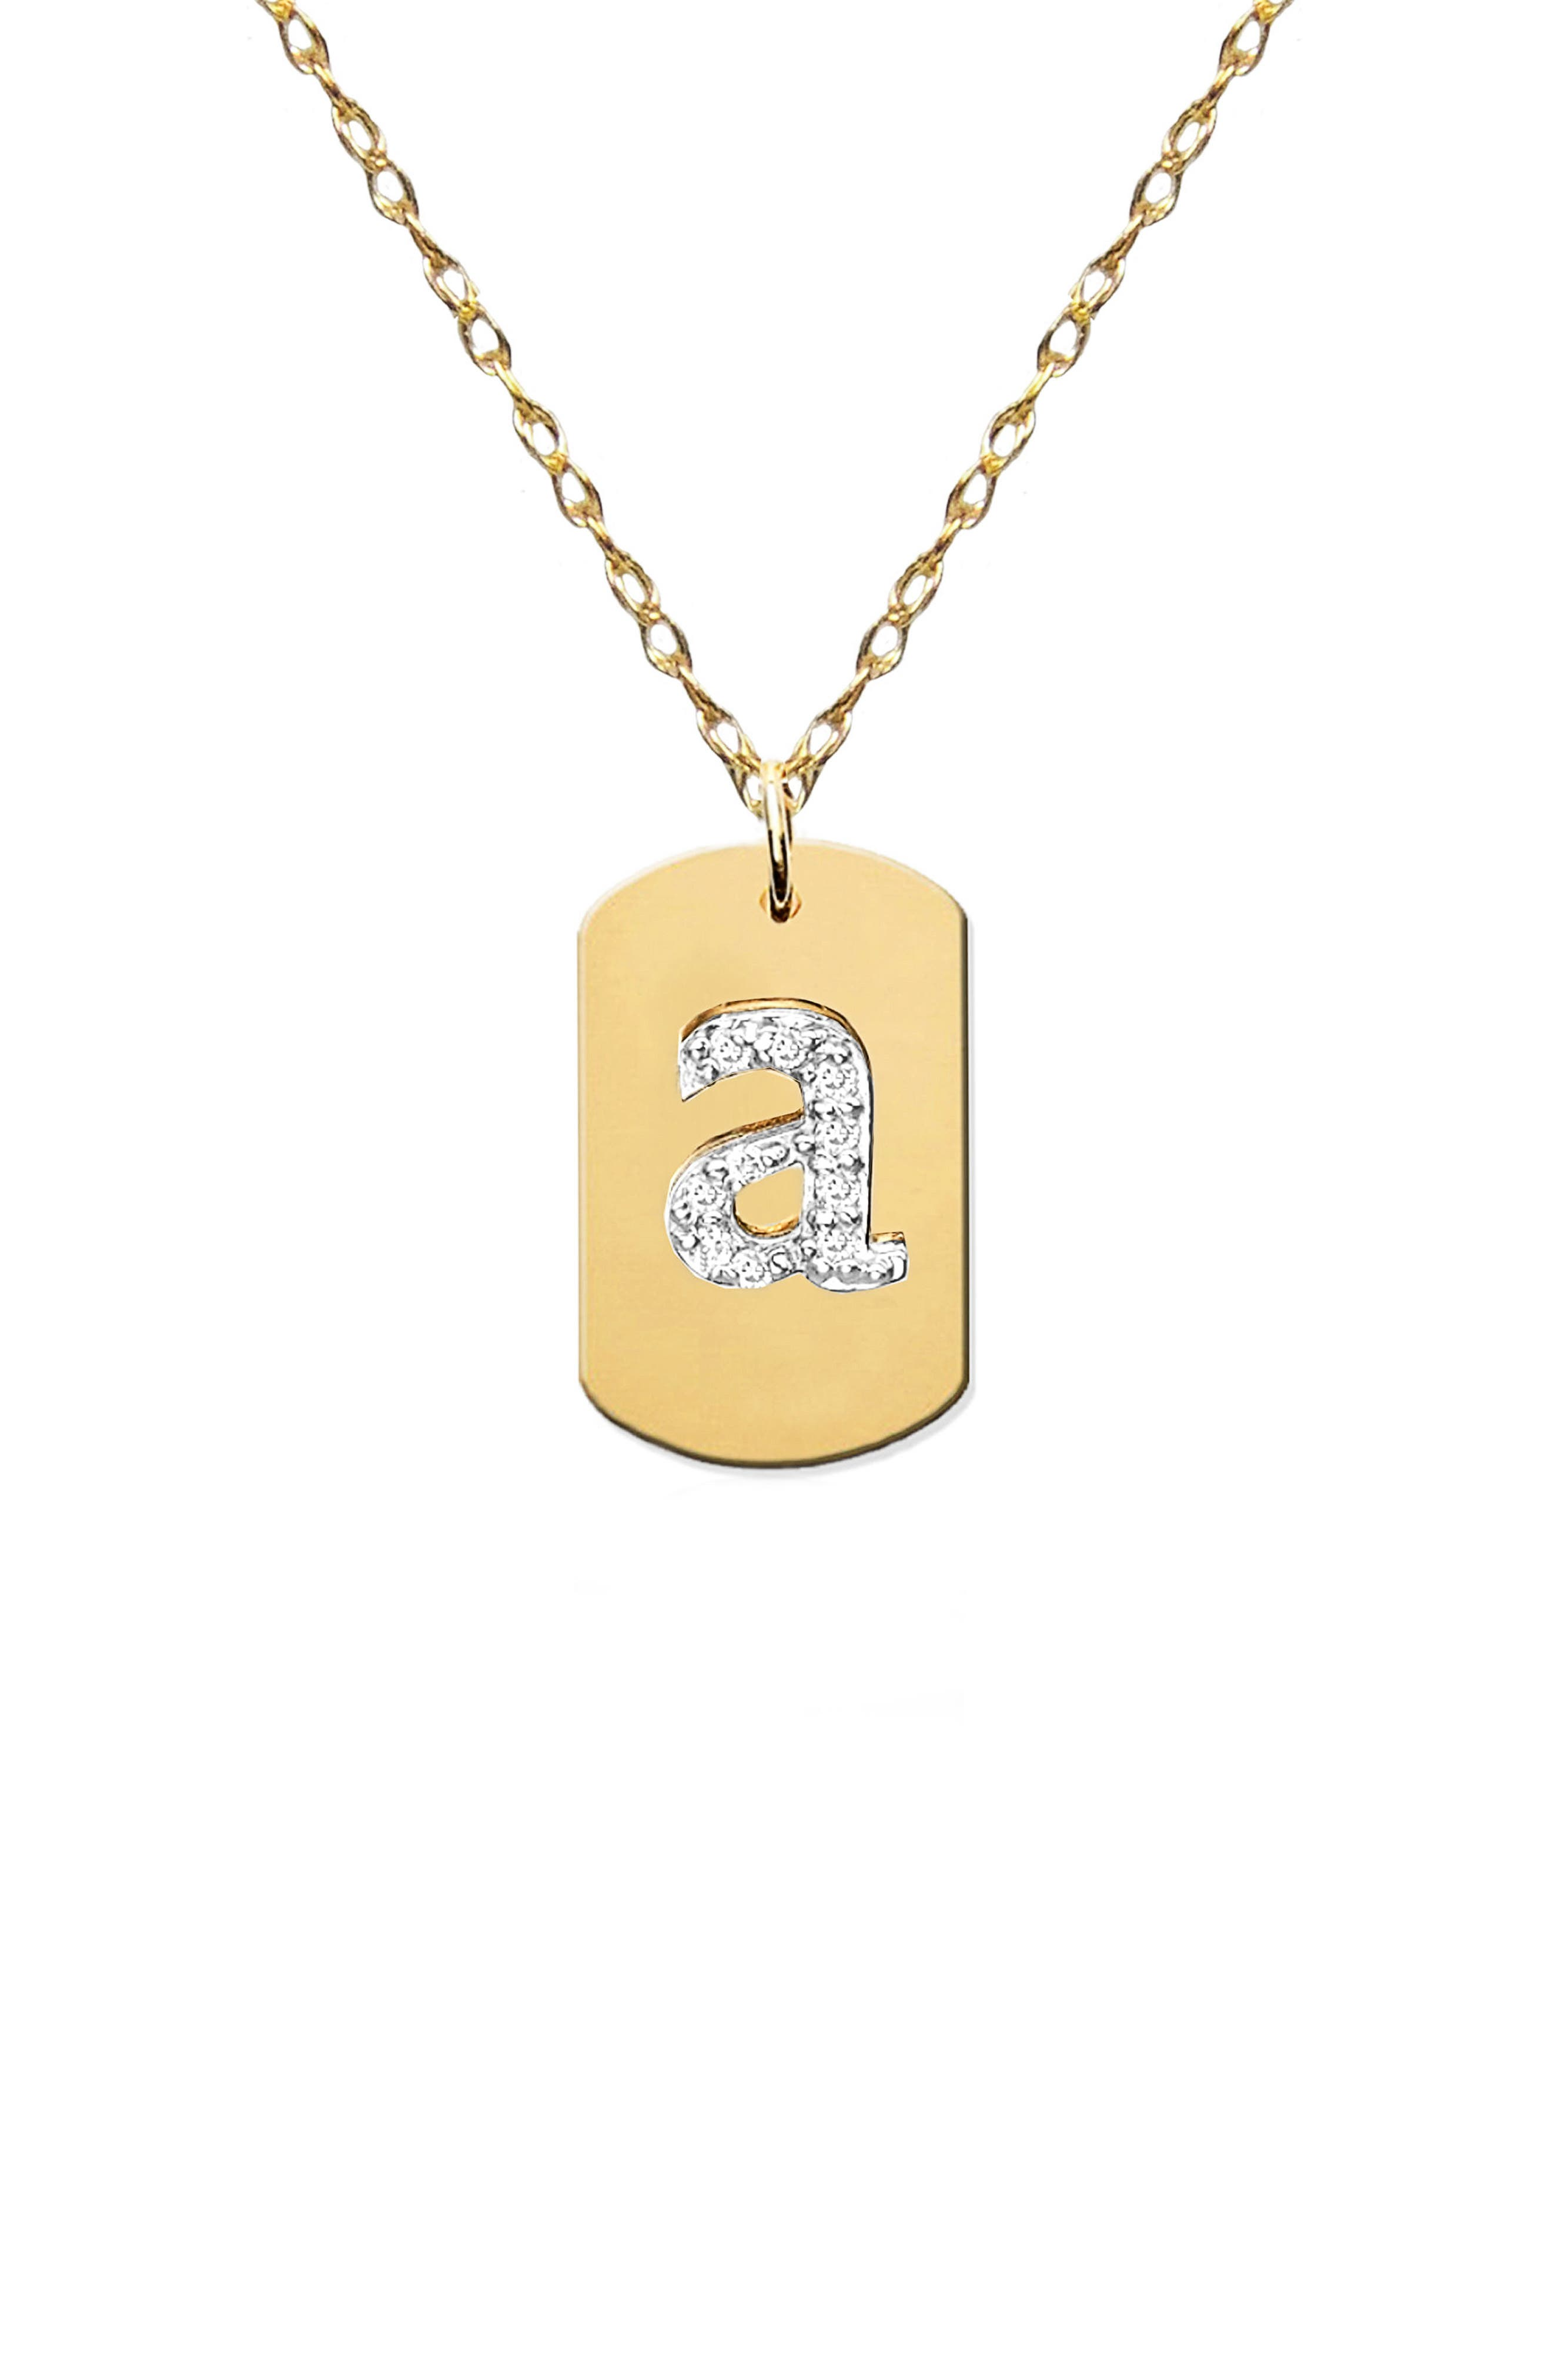 Main Image - Jane Basch Designs Diamond Initial Dog Tag Necklace (Nordstrom Exclusive)